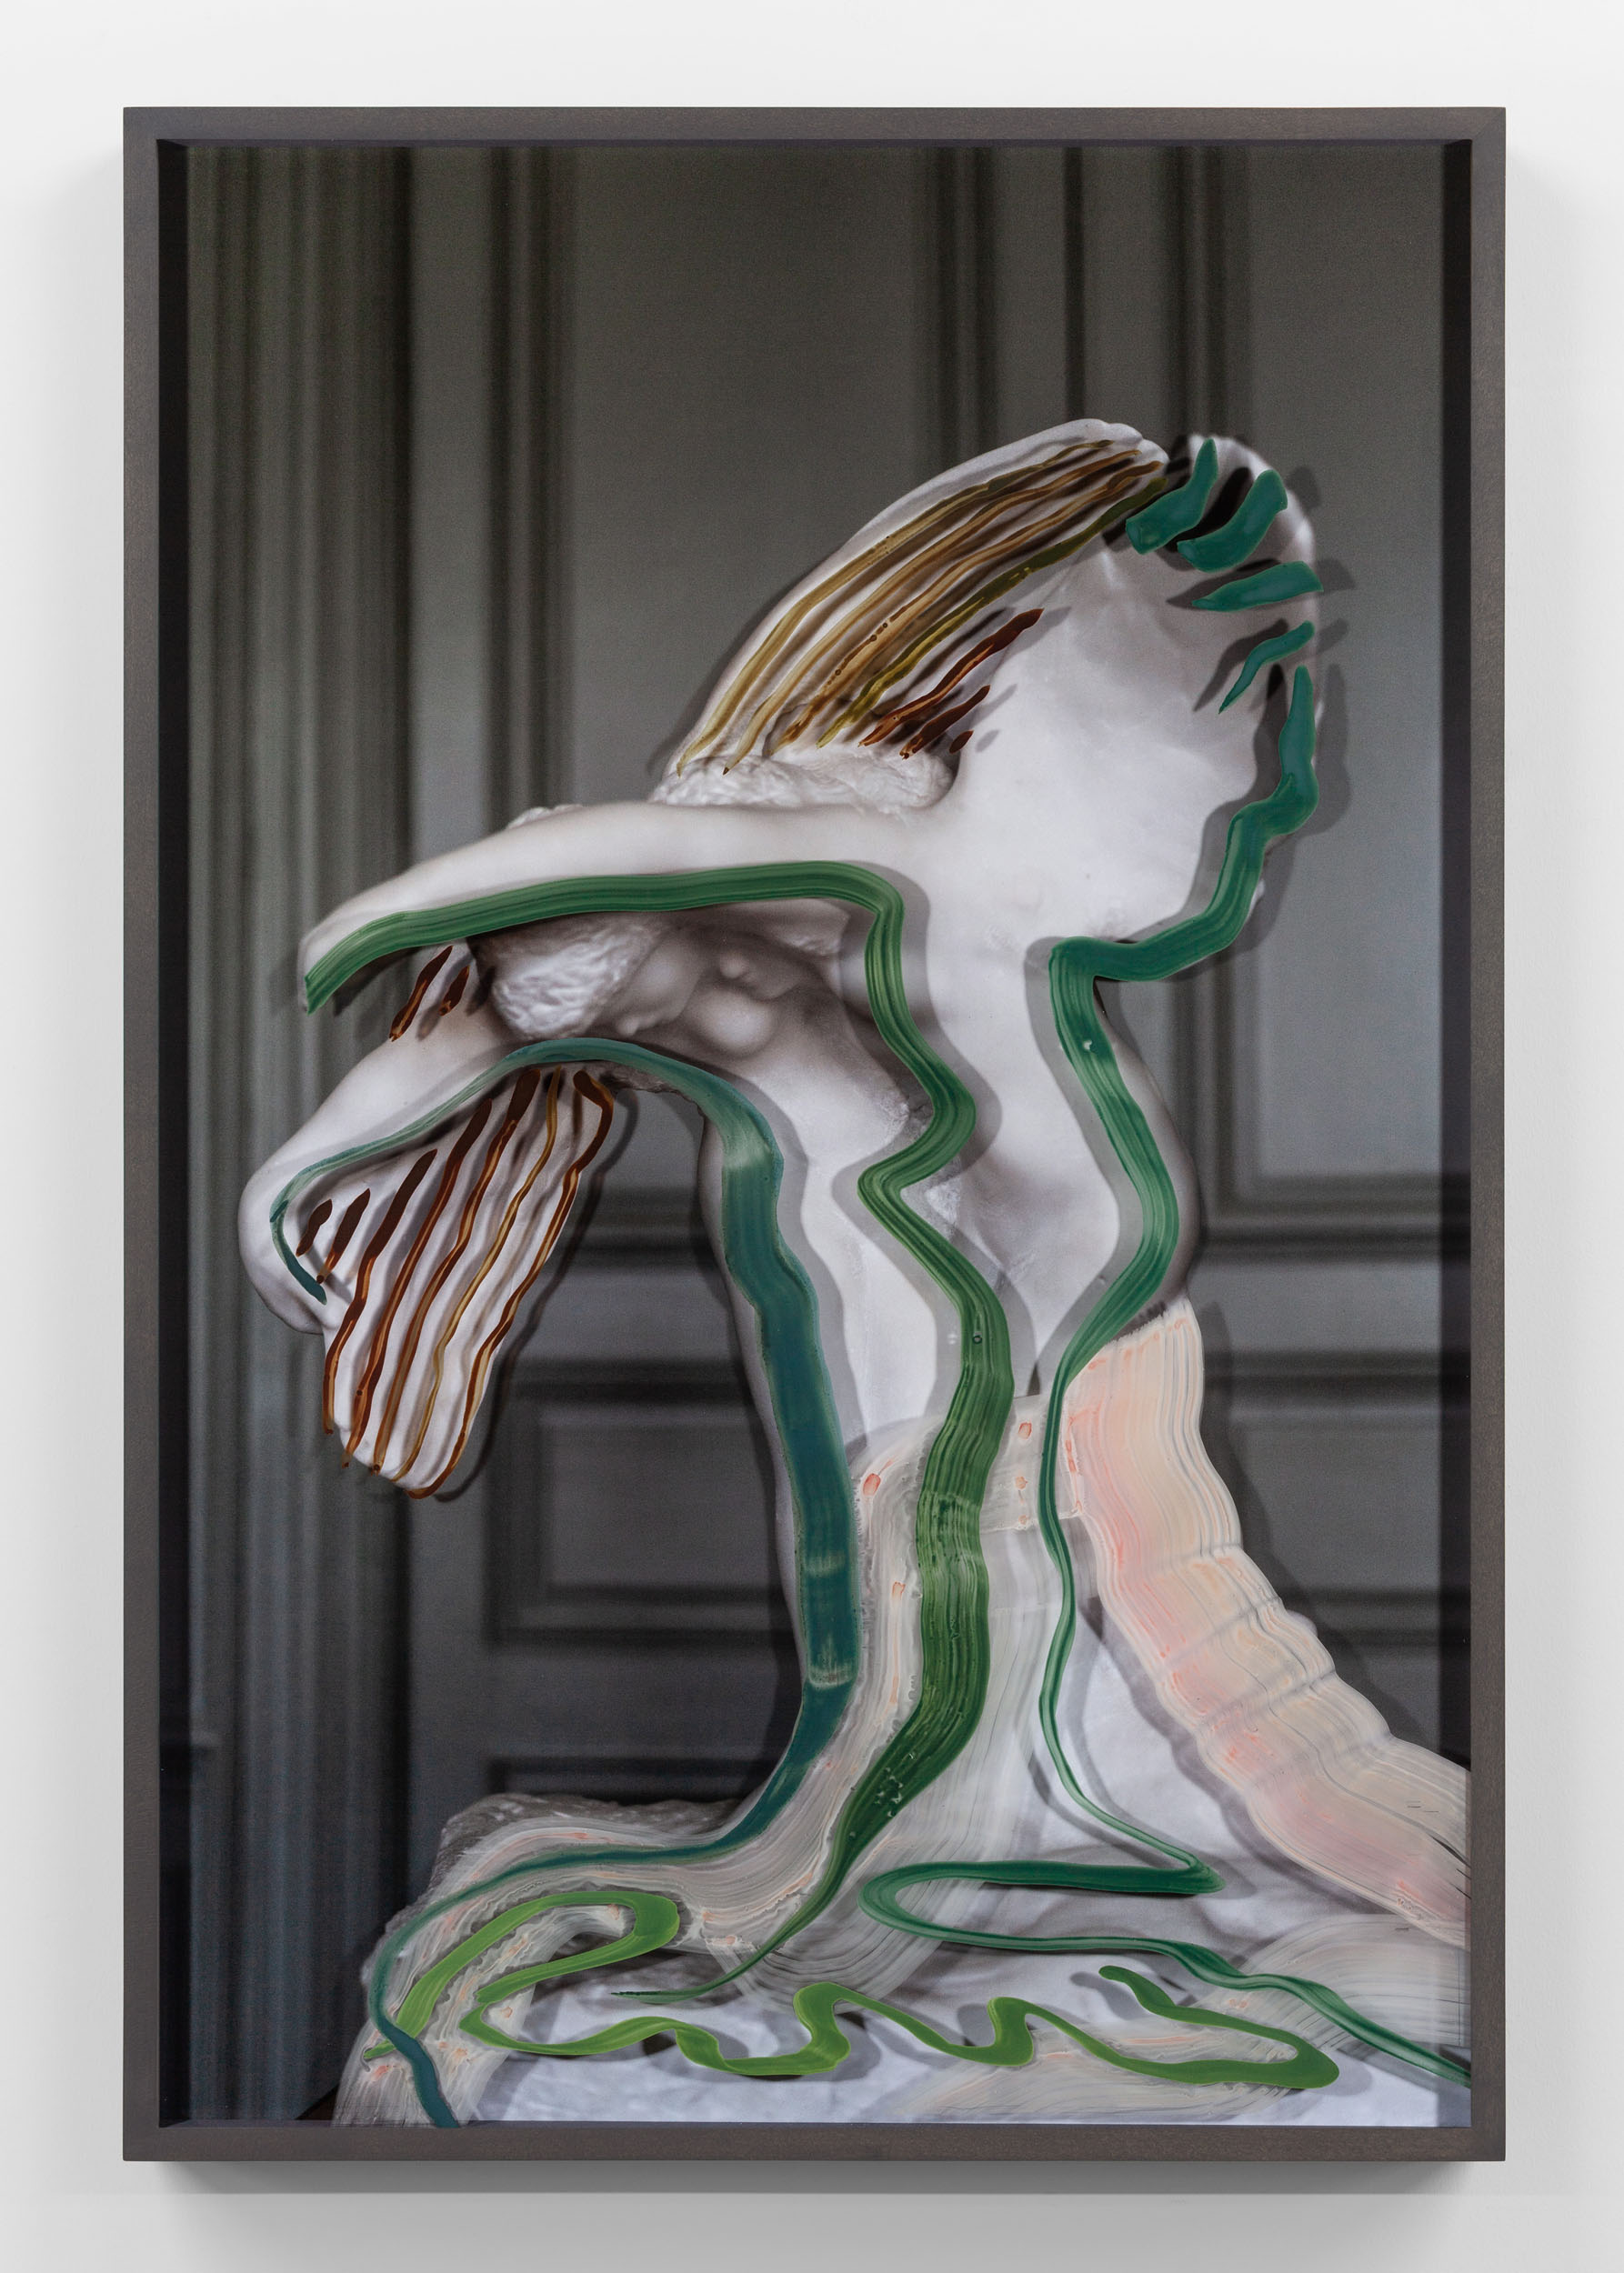 Untitled (The Benedictions with green strokes) 2019, hand-painted museum acrylic over archival pigment print 91.5 x 61 cm / 36 x 24 in. Unique work